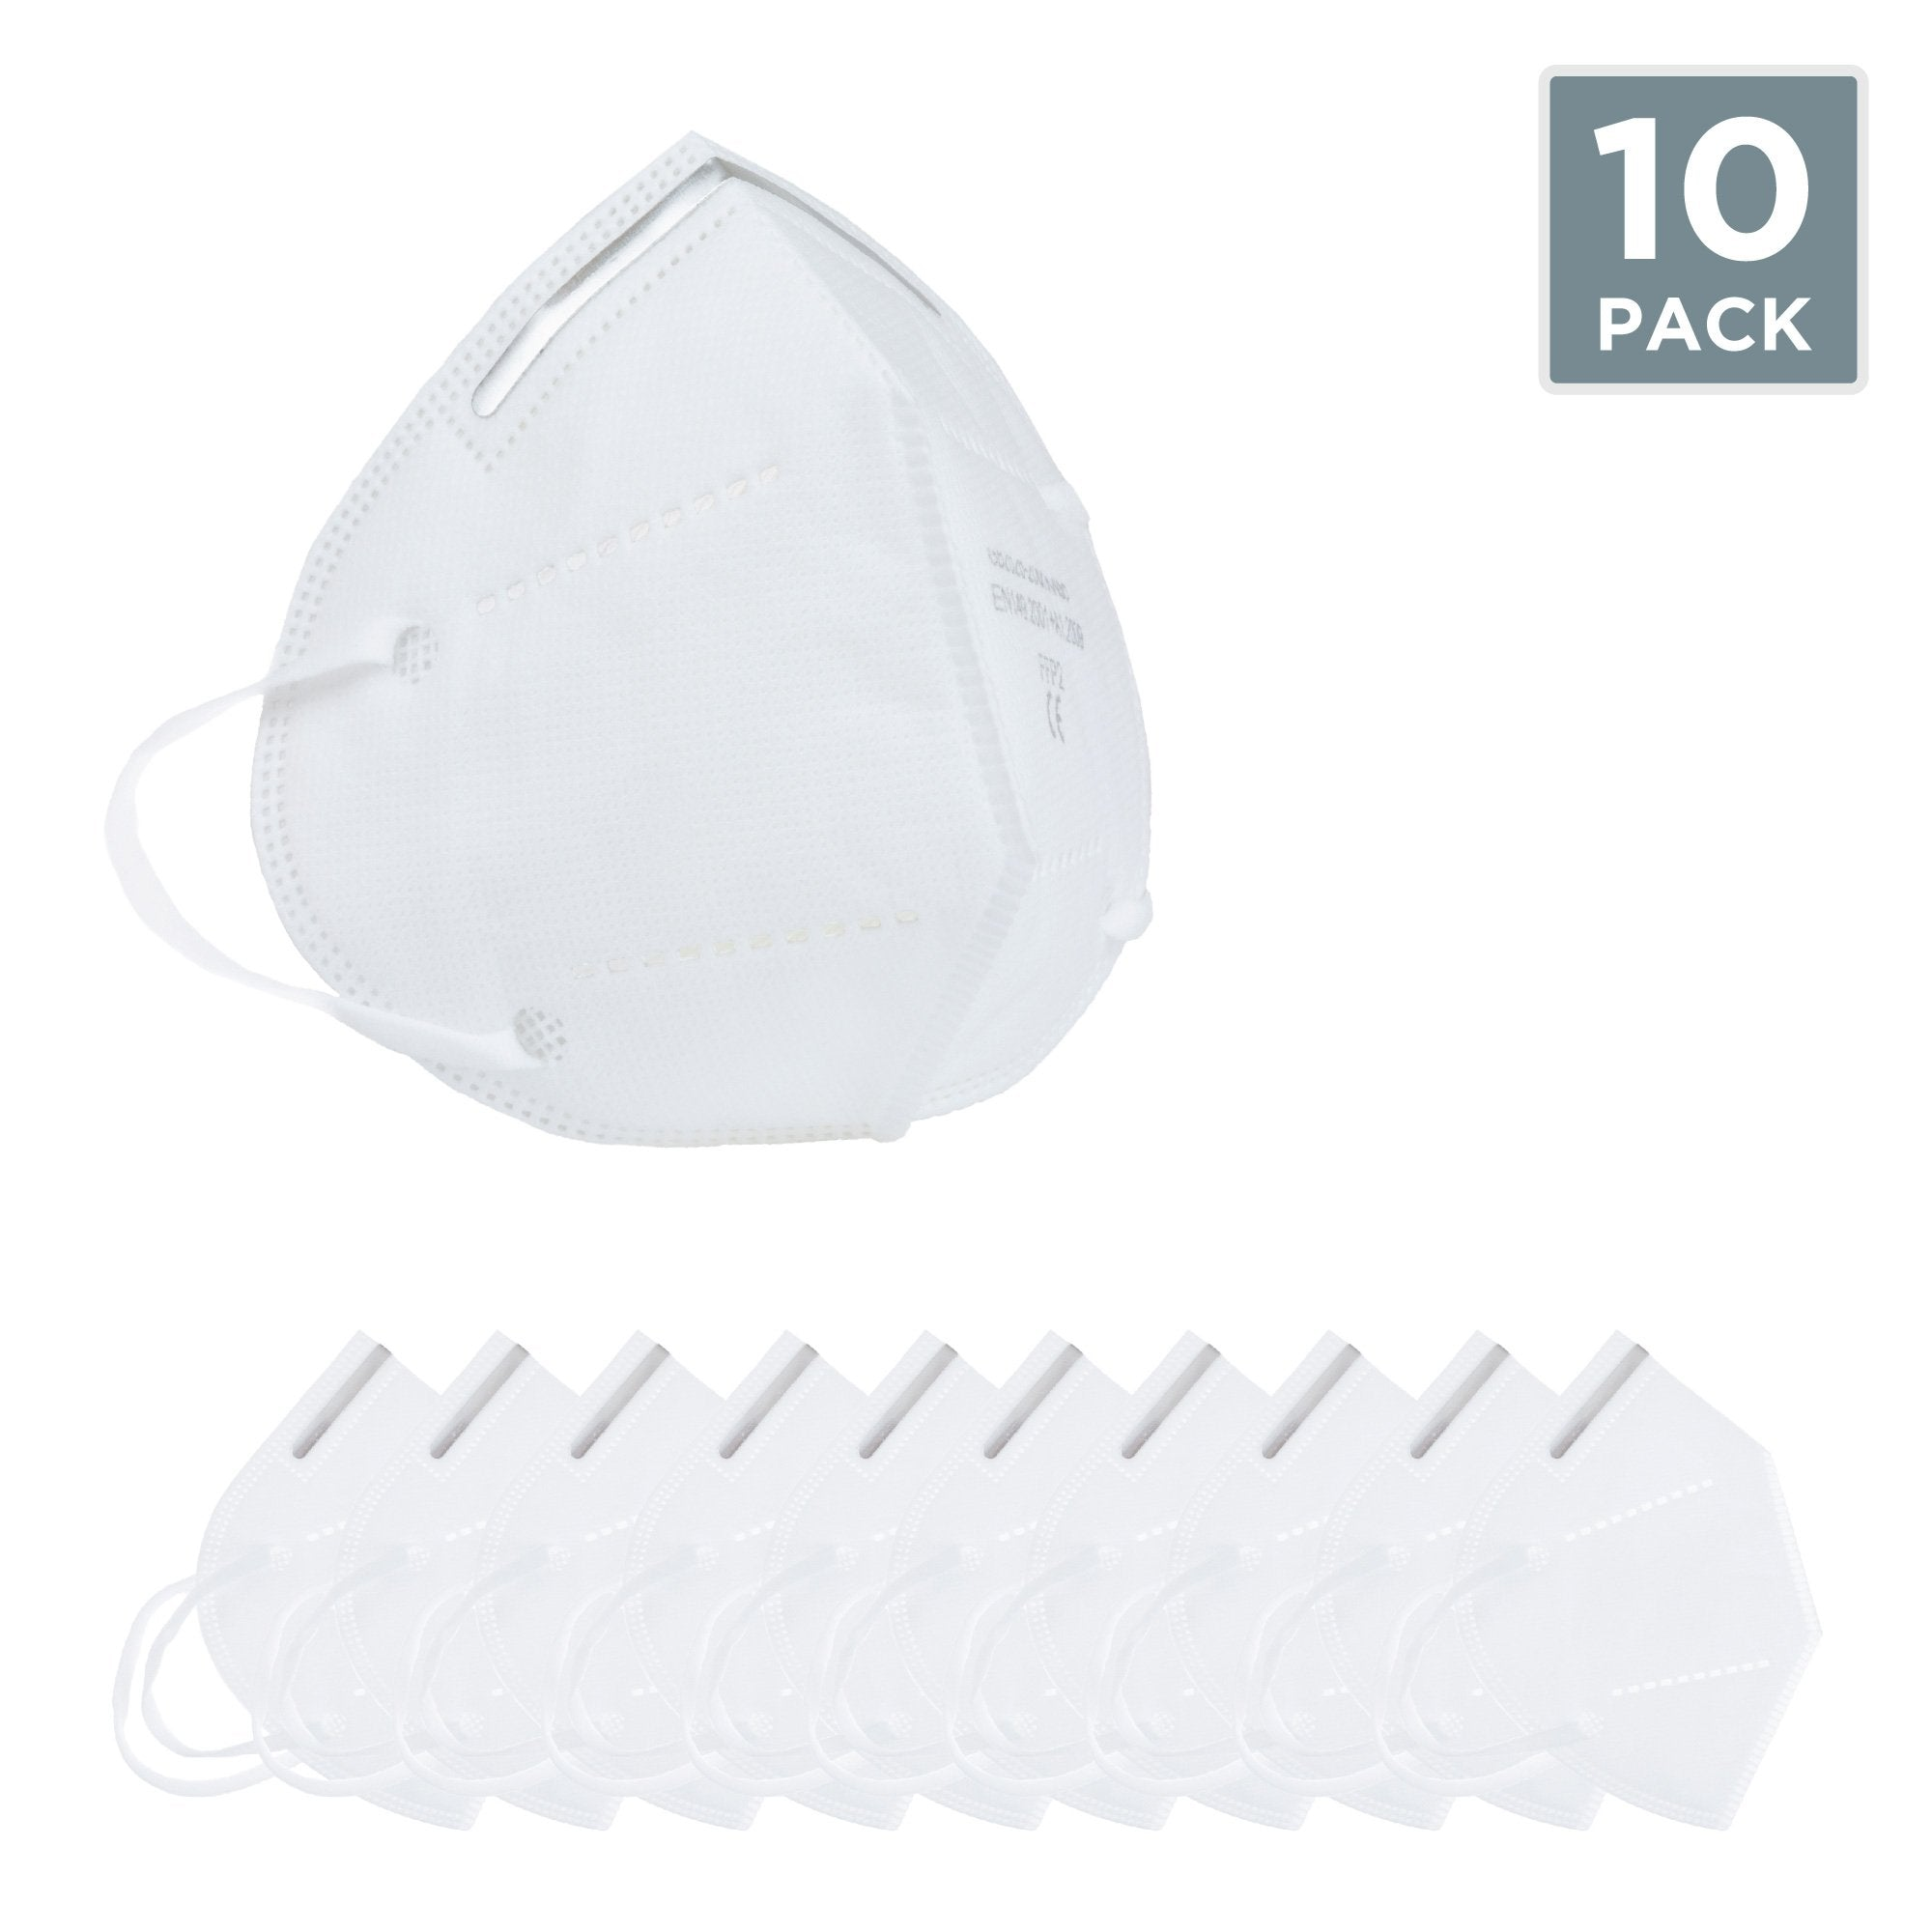 Alarms-DISPOSABLE KN95 FACE MASKS - PERSONAL USE - PACK OF 10 - UPDATED